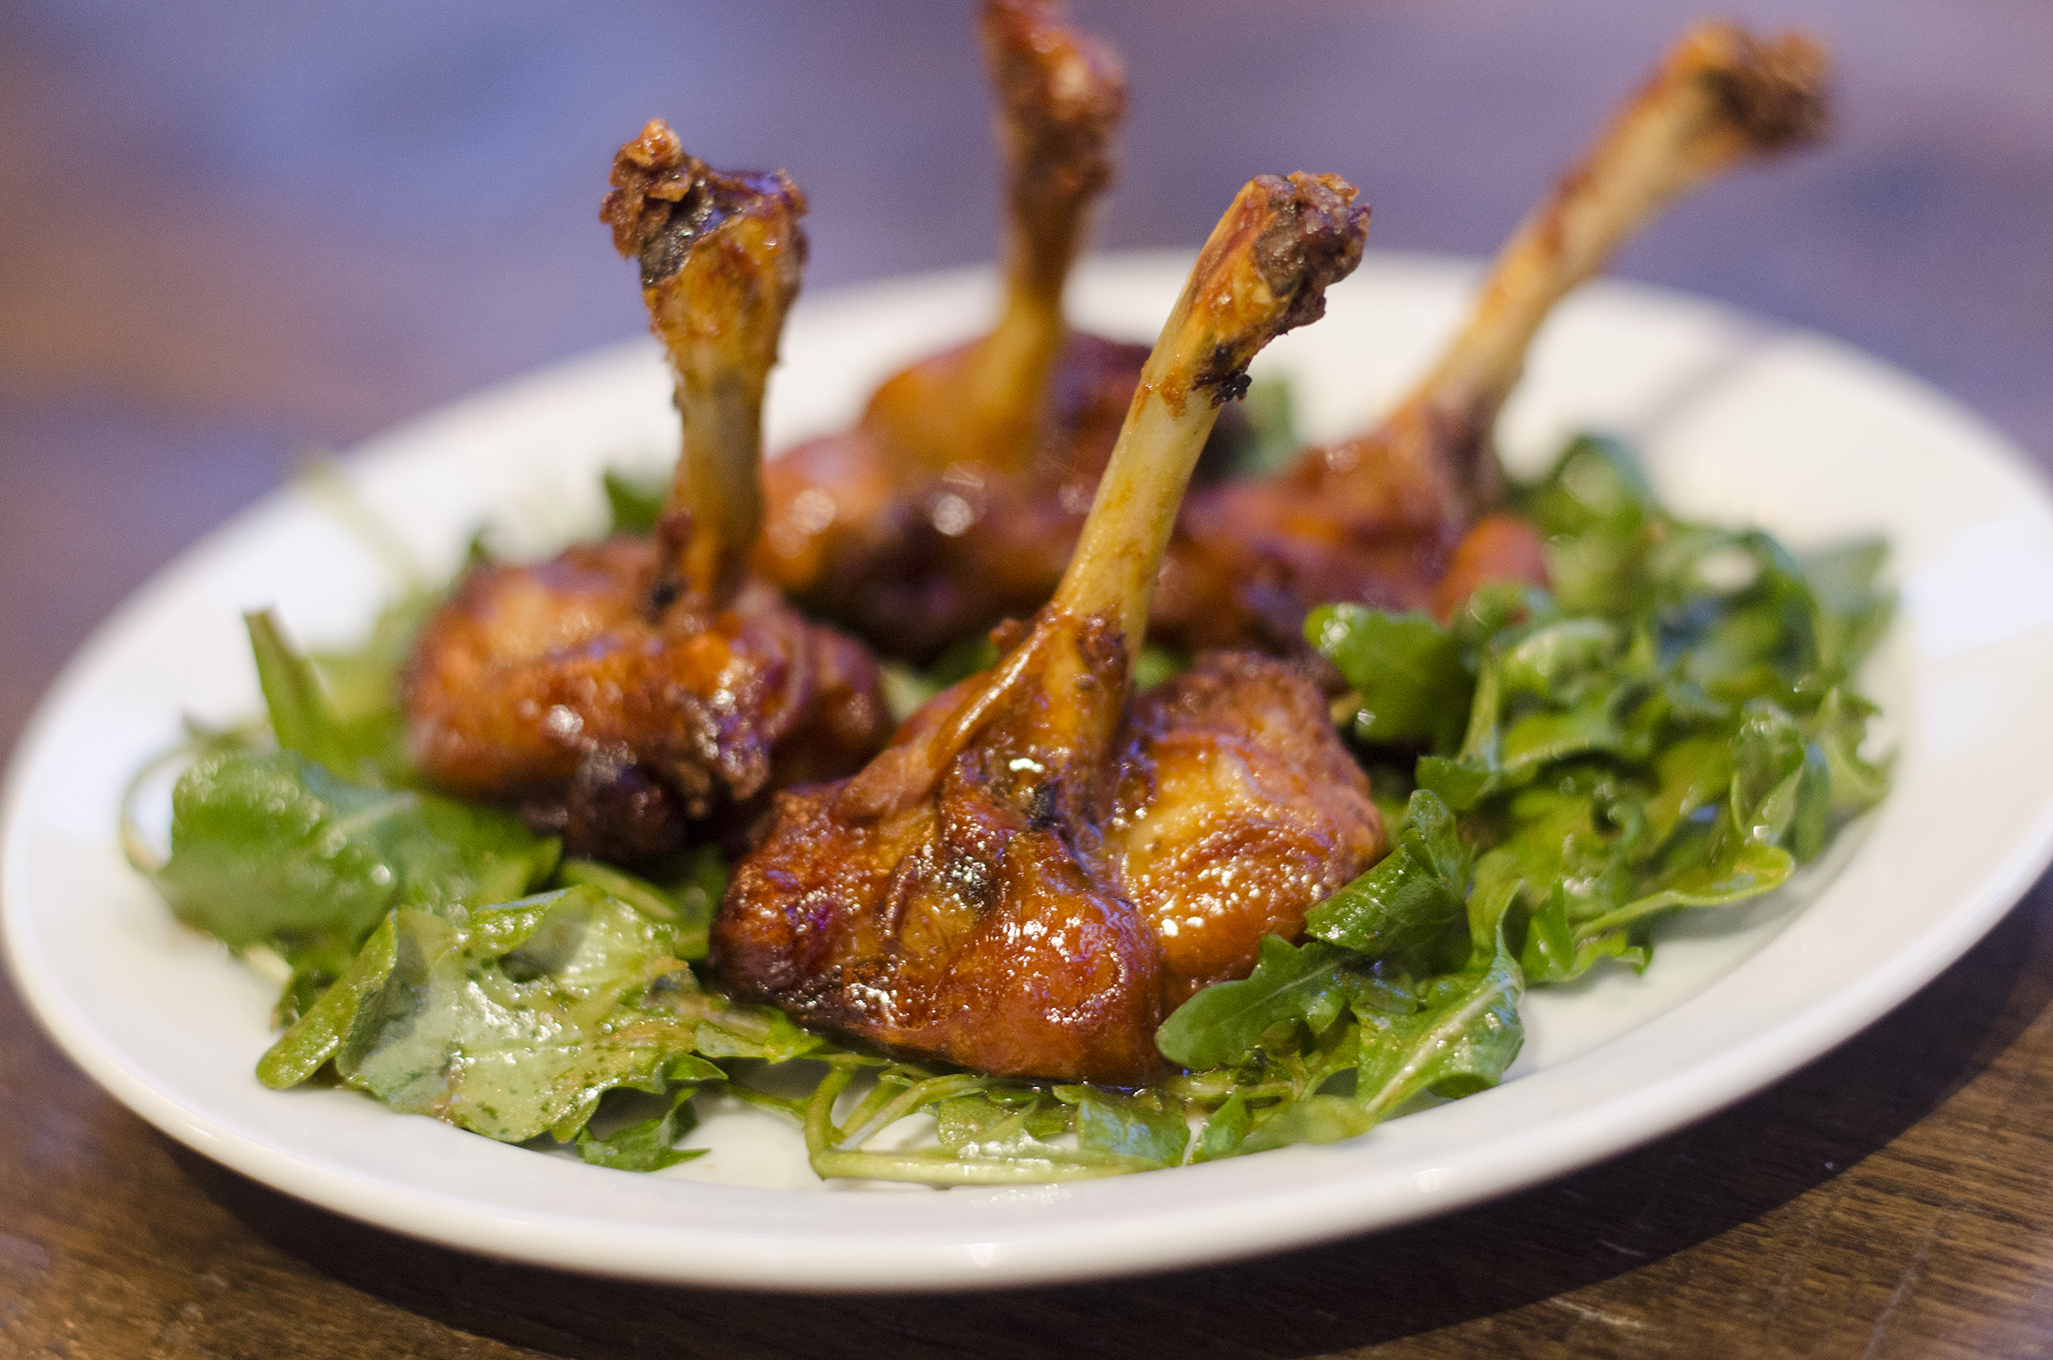 Chicken Lollipops from The Grove Brew House in Kingsville, Ontario.